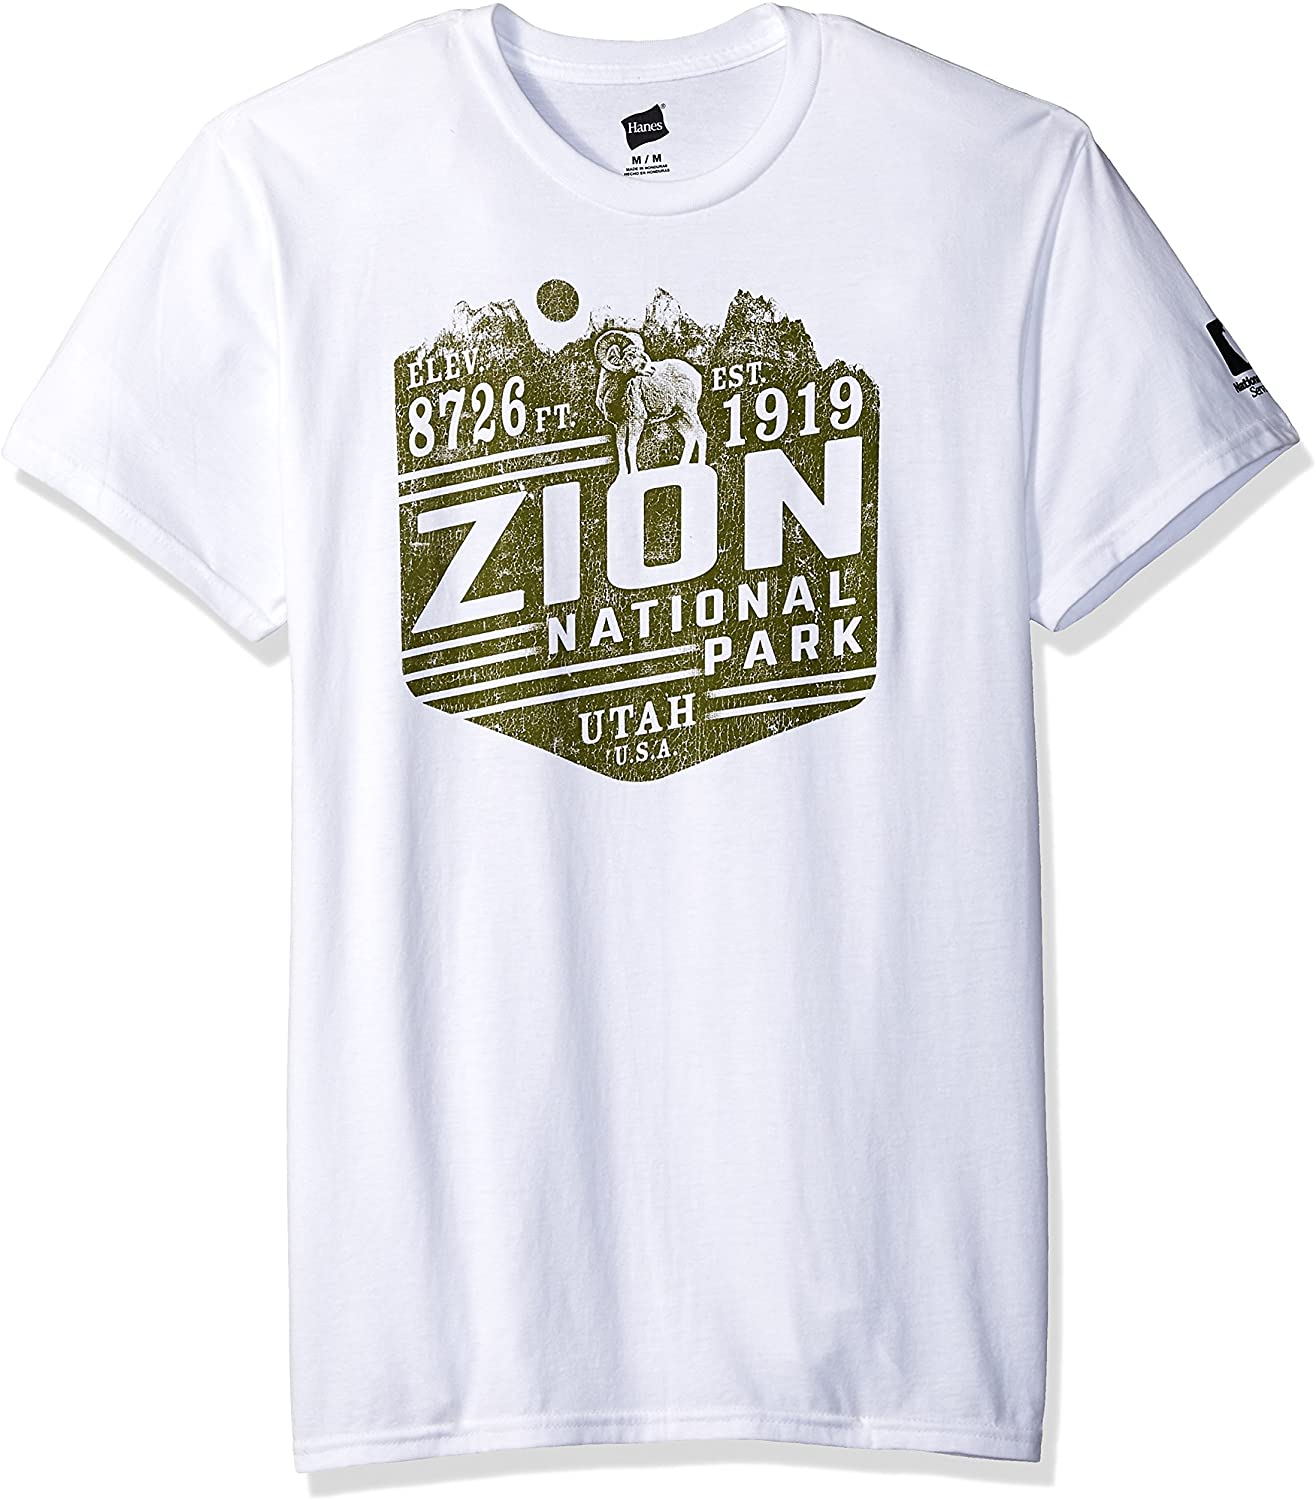 Hanes Men's National Parks Graphic T-Shirt Collection, White/Zion, 3X Large